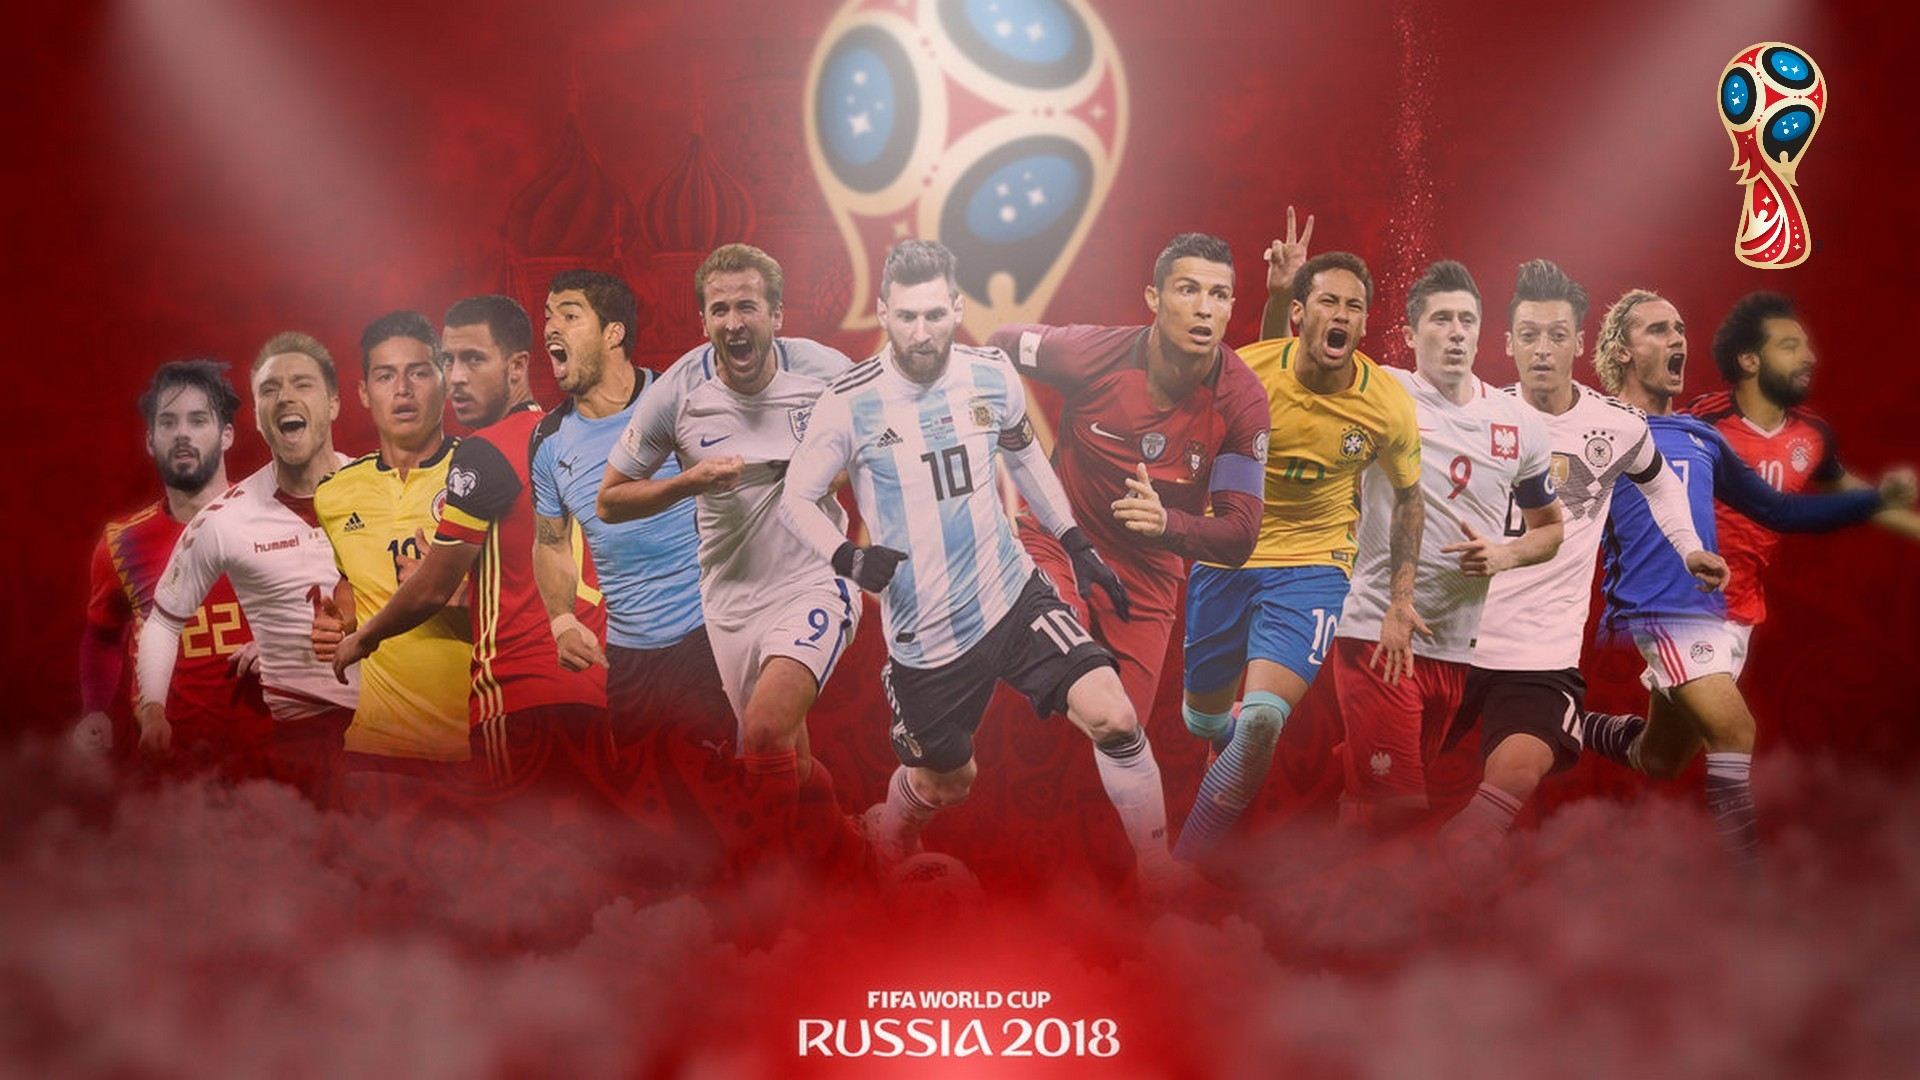 FIFA World Cup Wallpaper with resolution 1920x1080 pixel. You can make this wallpaper for your Mac or Windows Desktop Background, iPhone, Android or Tablet and another Smartphone device